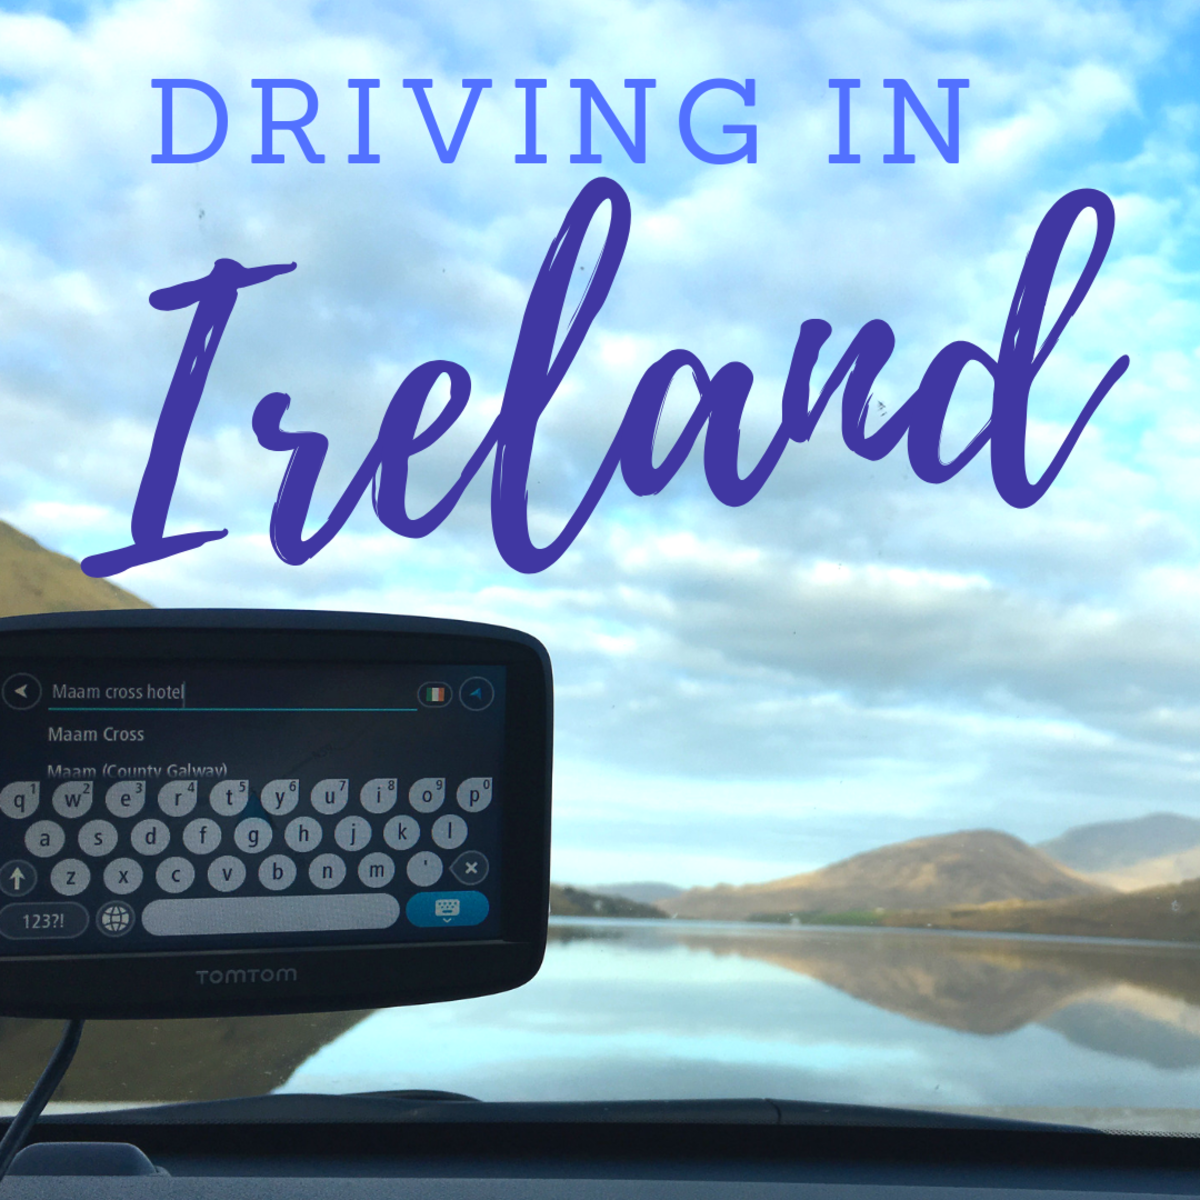 20 Tips for Driving in Ireland for American Tourists